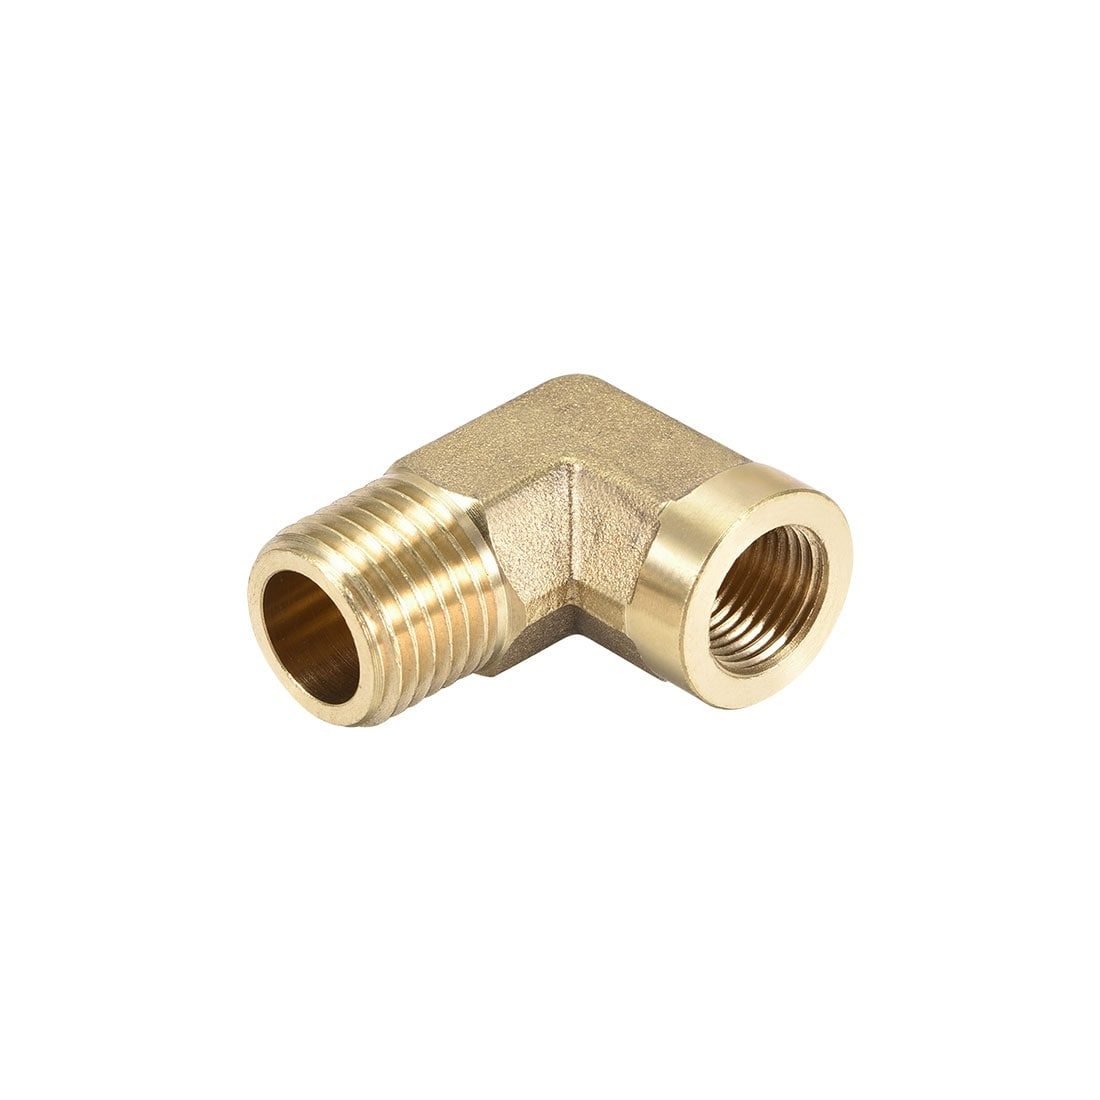 Brass Pipe Fitting 90 Degree Elbow G3//8 Male x G1//2 Male